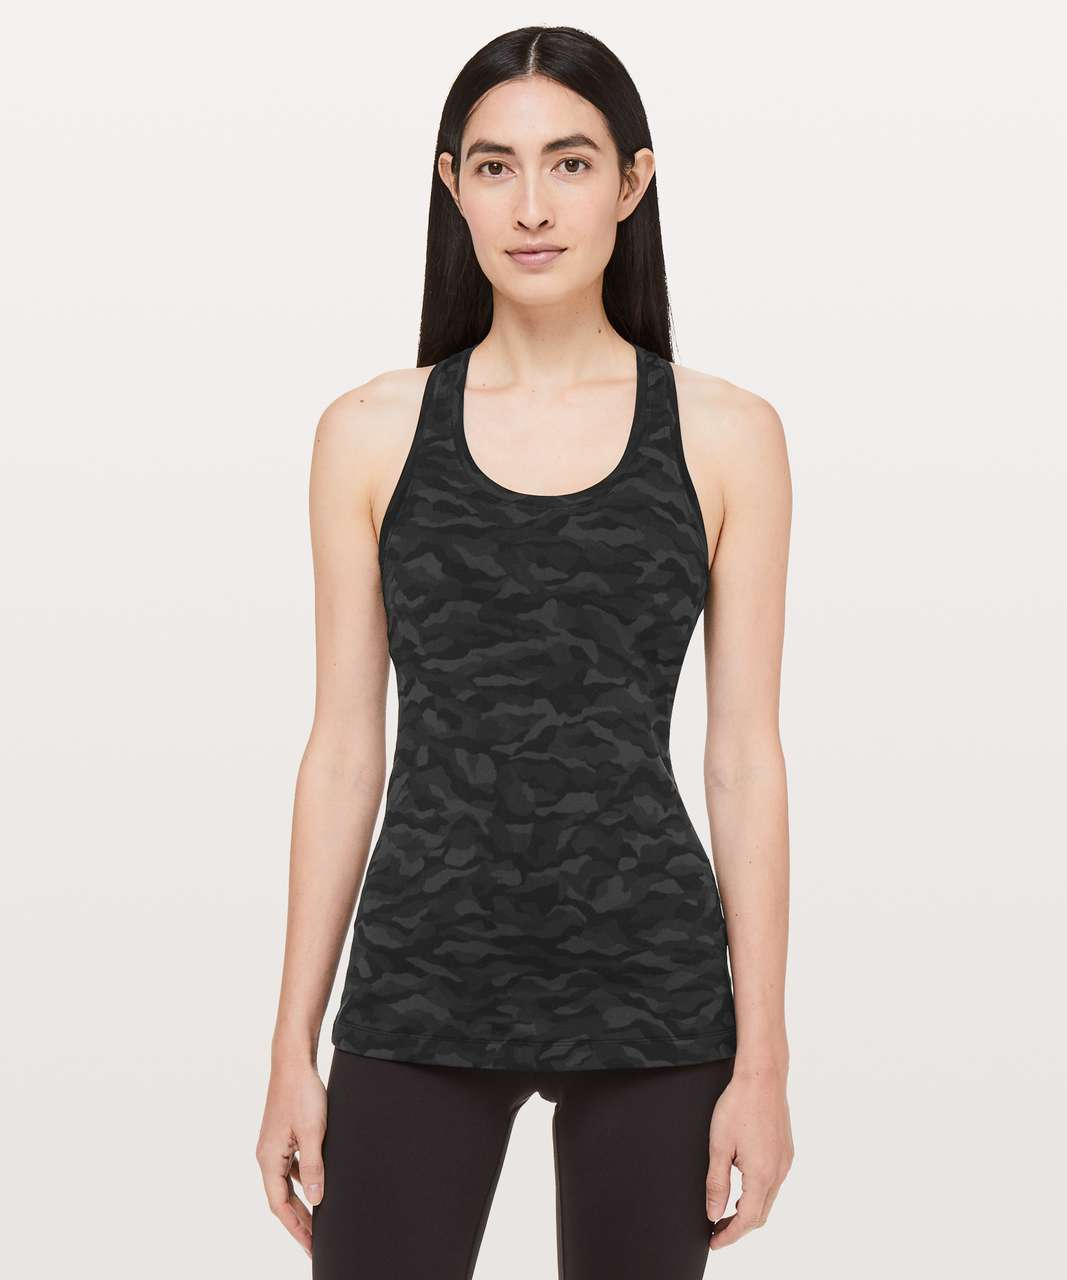 Lululemon Cool Racerback II - Sequoia Camo Print Deep Coal Black